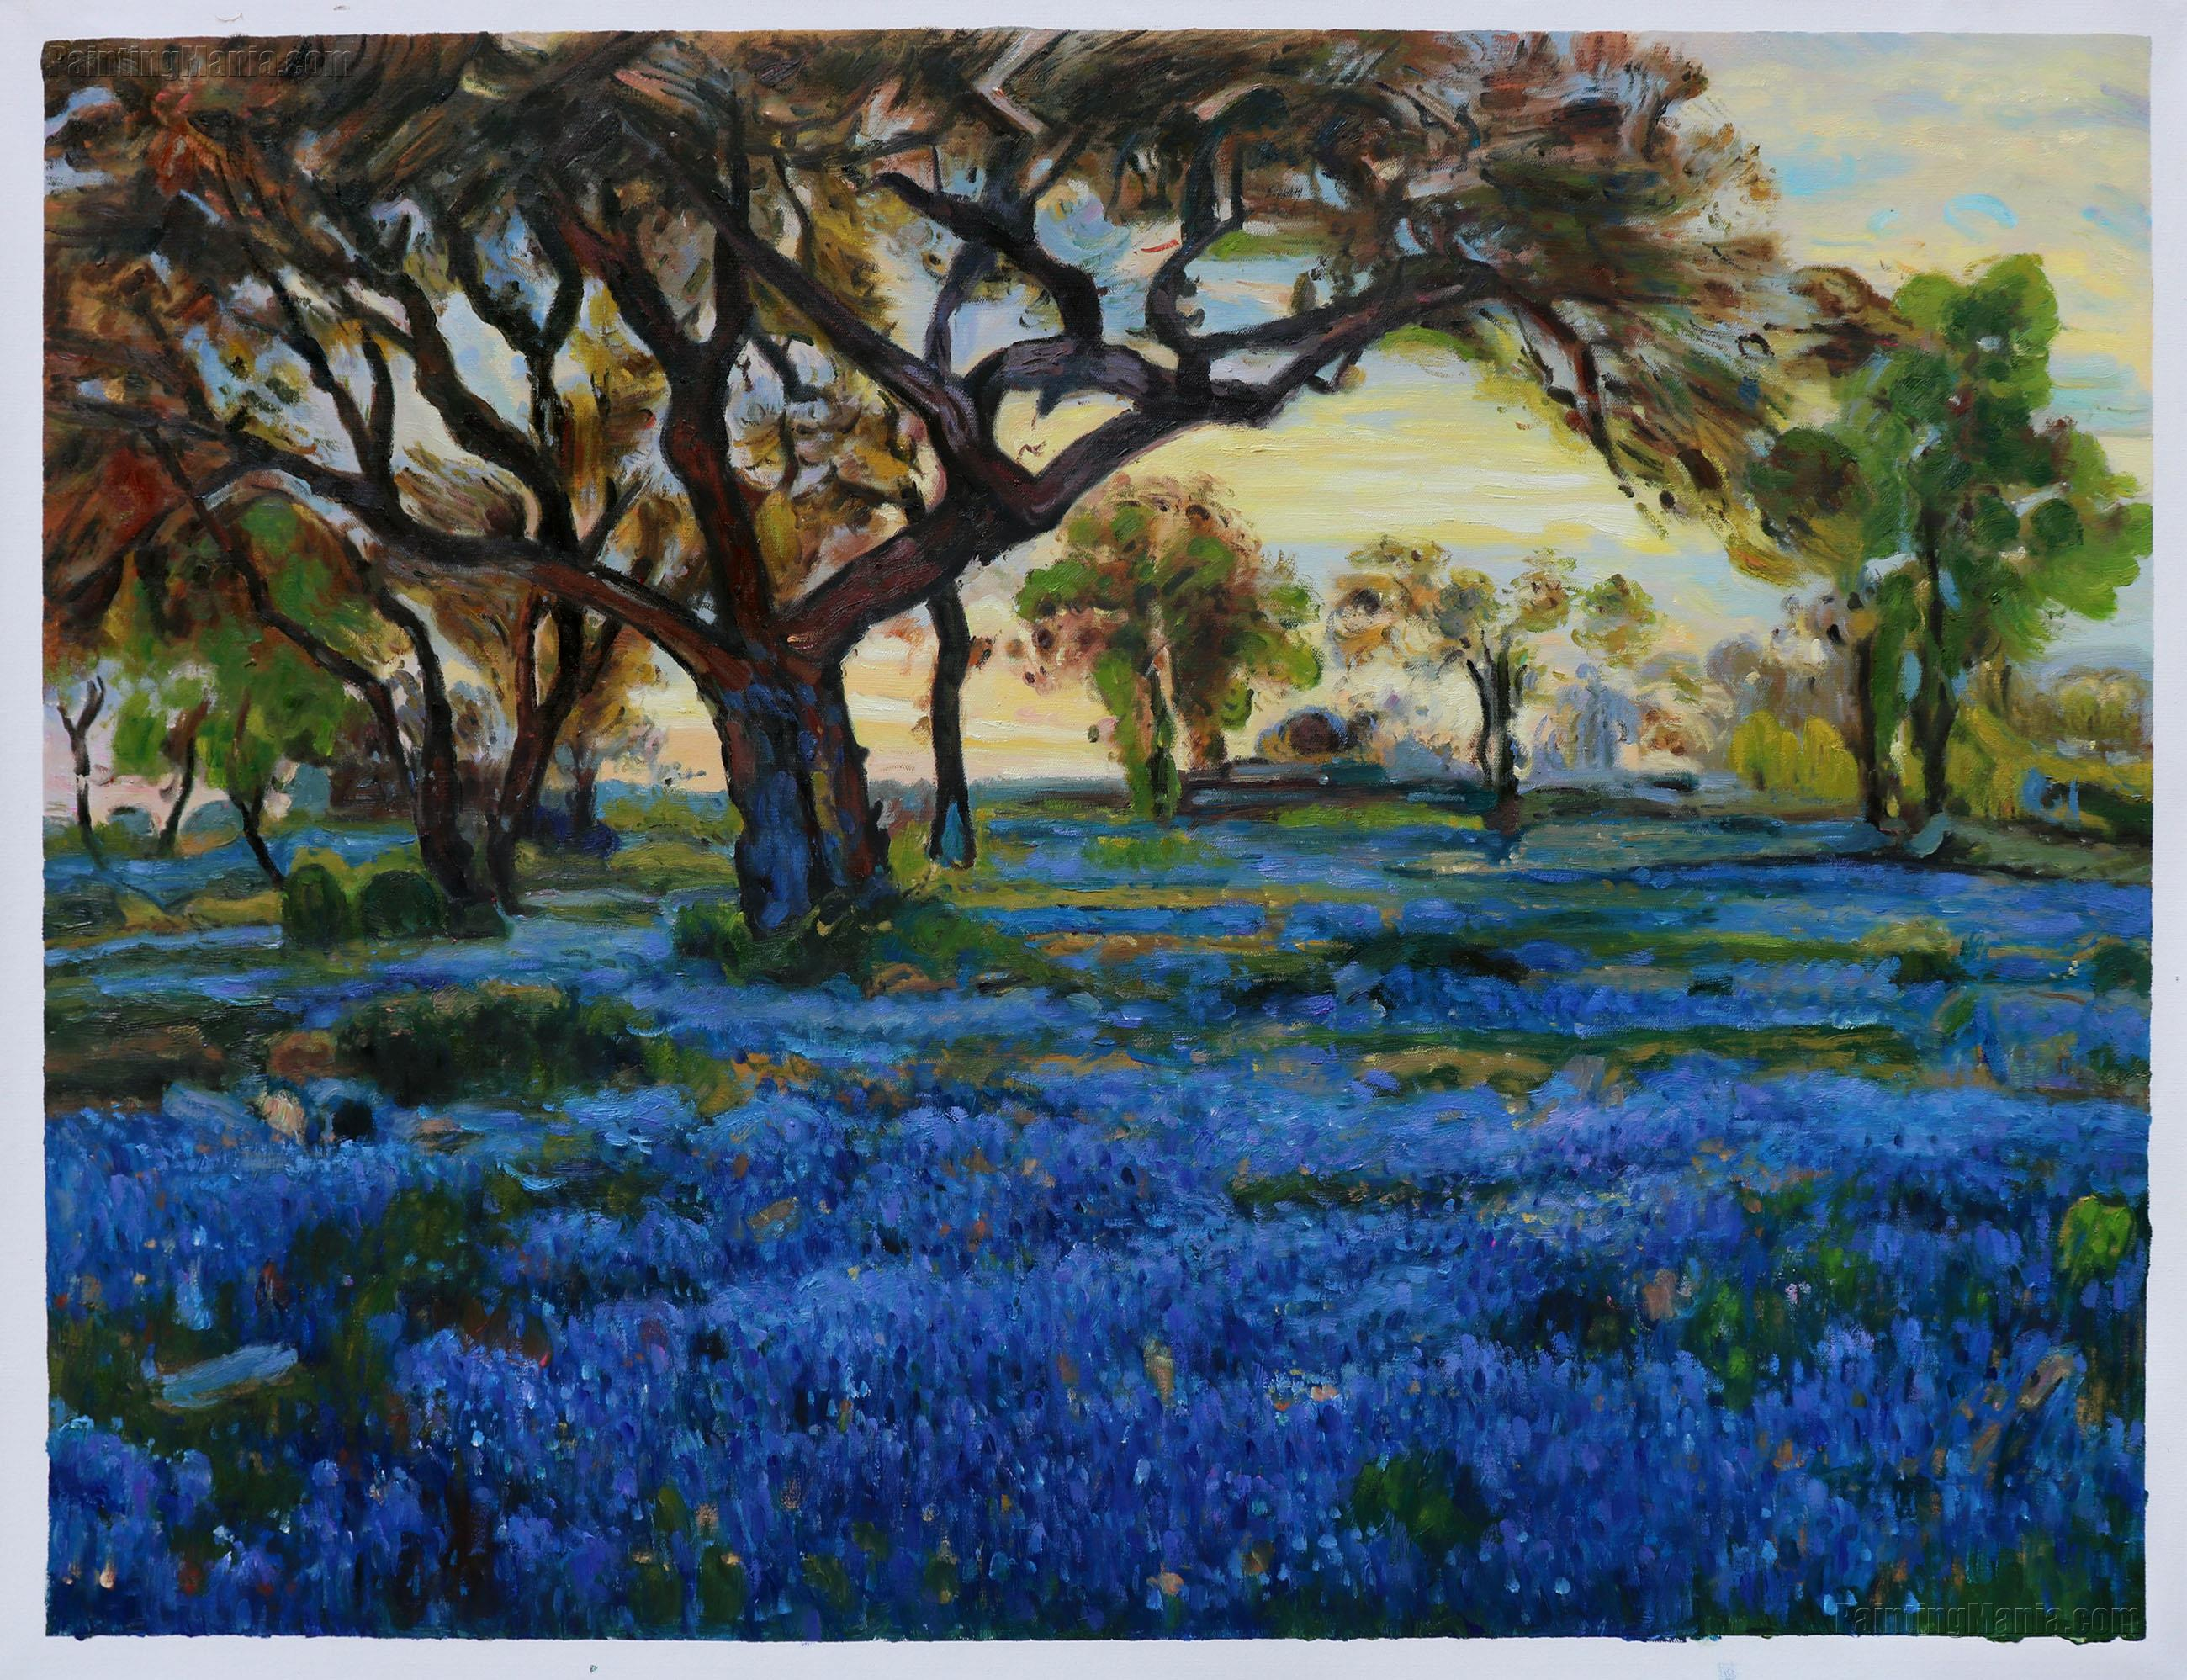 Old Live Oak Tree and Bluebonnets on the West Texas Military Grounds, San Antonio